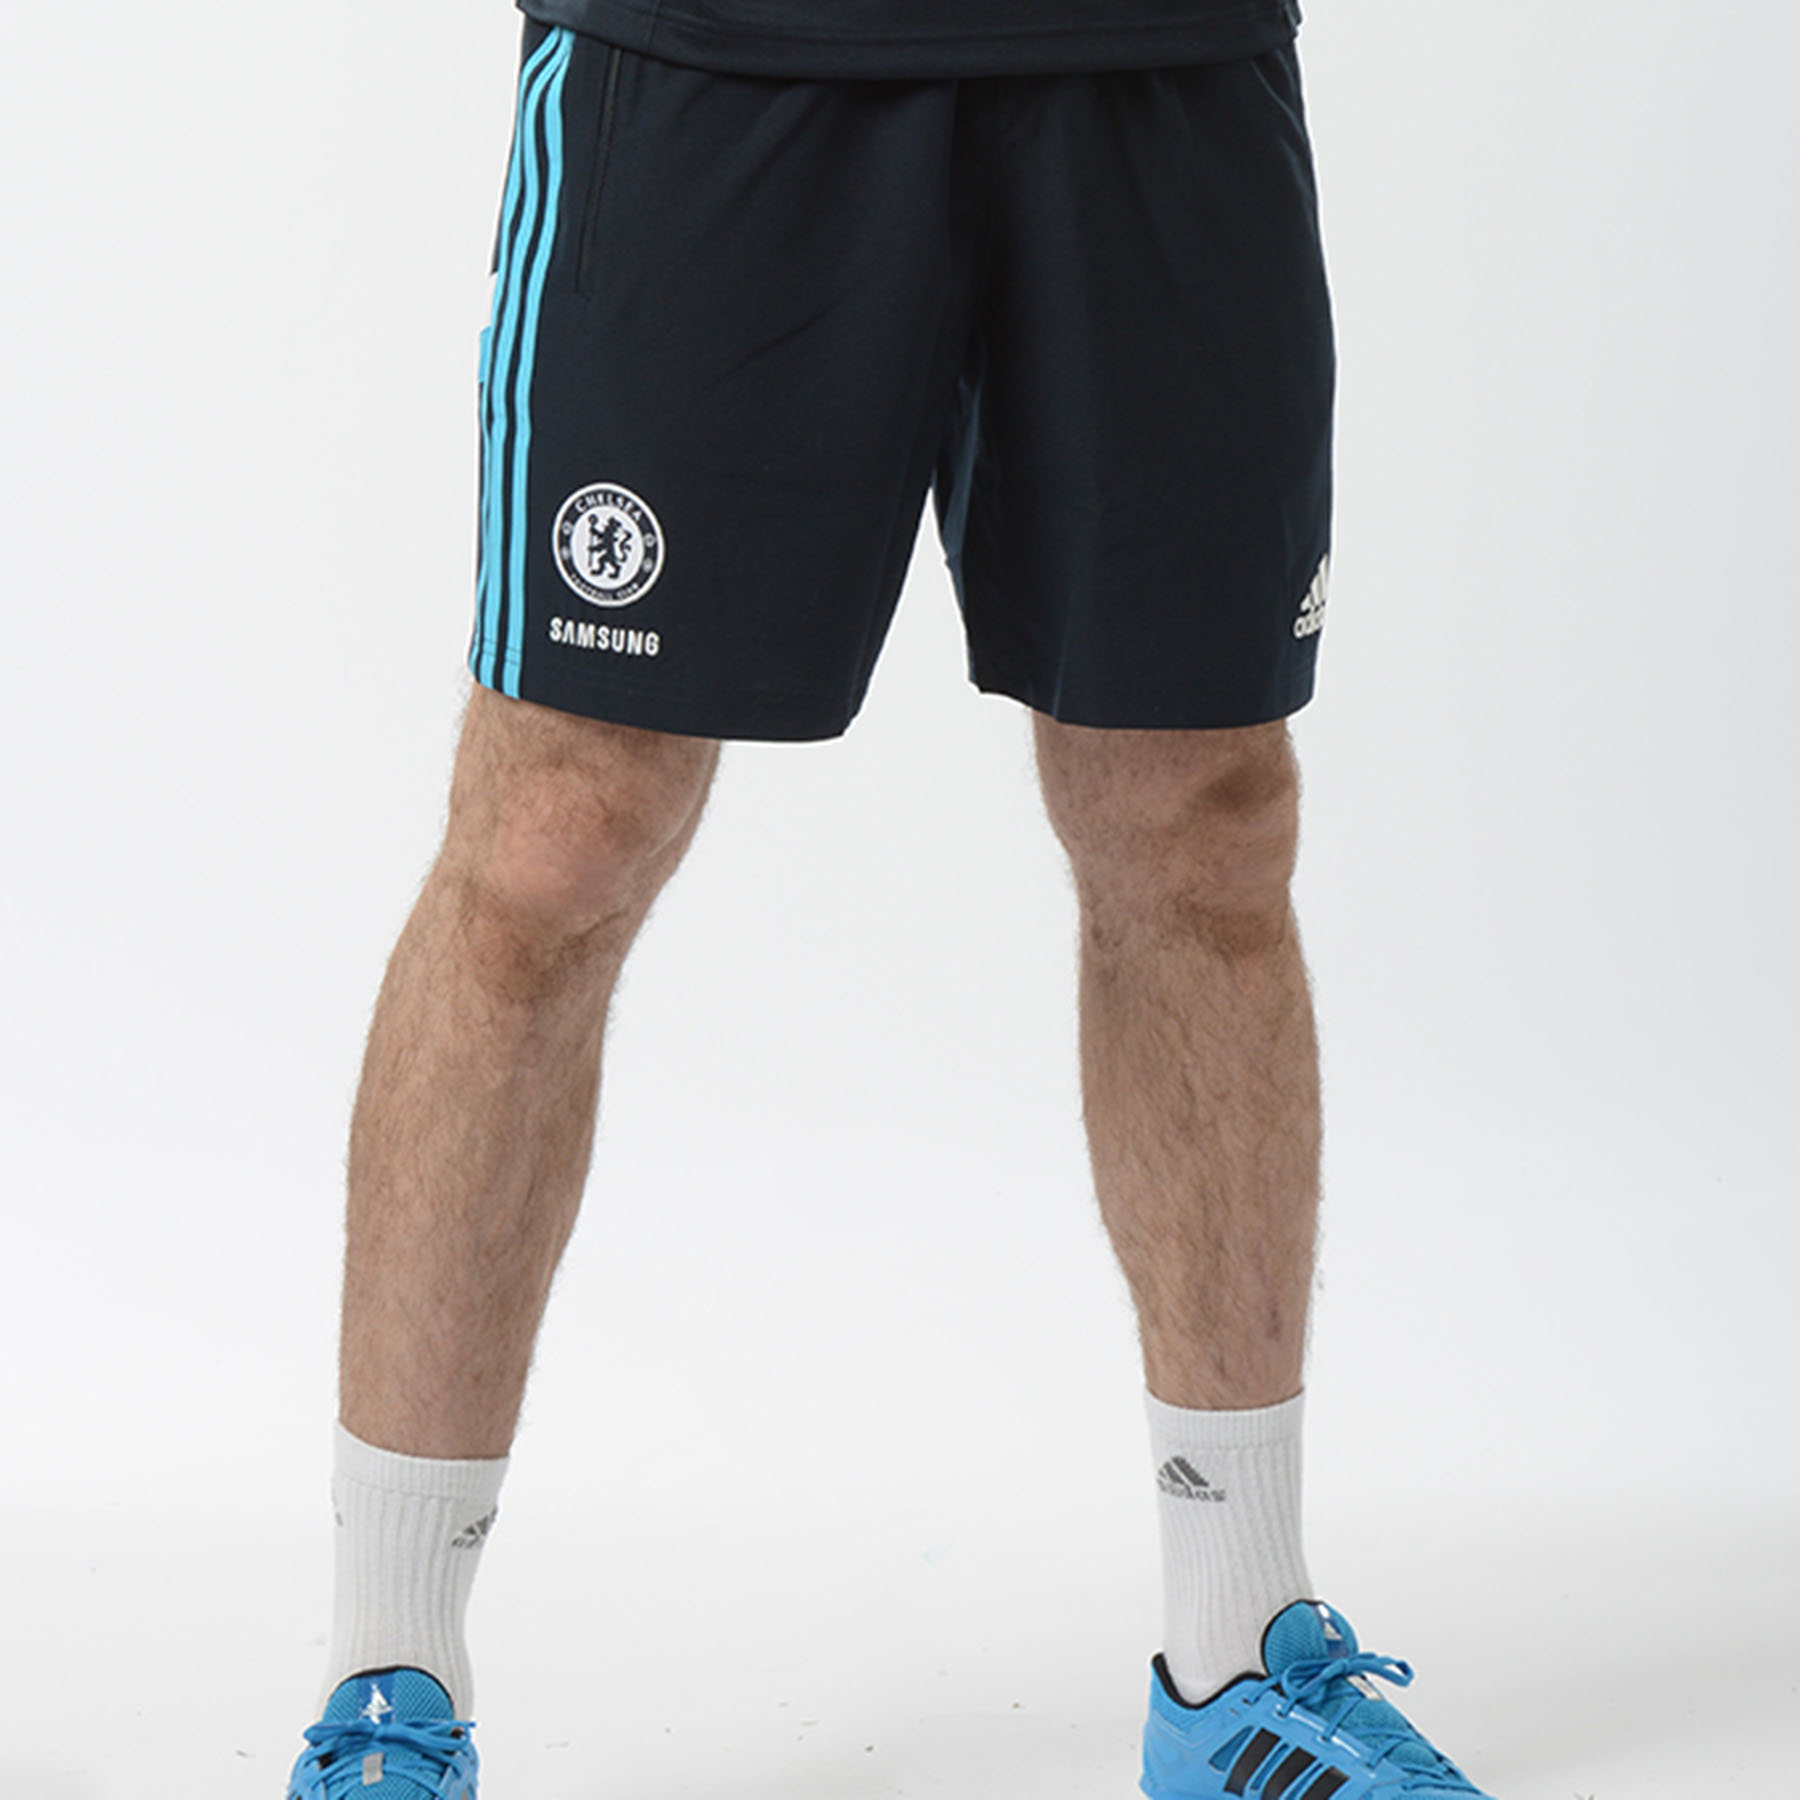 Chelsea Training Woven Shorts   Enjoy ultimate performance and comfort while in motion with these adidas Chelsea Training Woven Shorts.   Styled with a Chelsea club crest lion badge and adidas performance logo and stripes, you can enjoy an athletic style and team pride as you practise your skills on the pitch in these Chelsea shorts.   Benefits of these Chelsea woven training shorts •Regular fit •Embroidered logo •100% Polyester